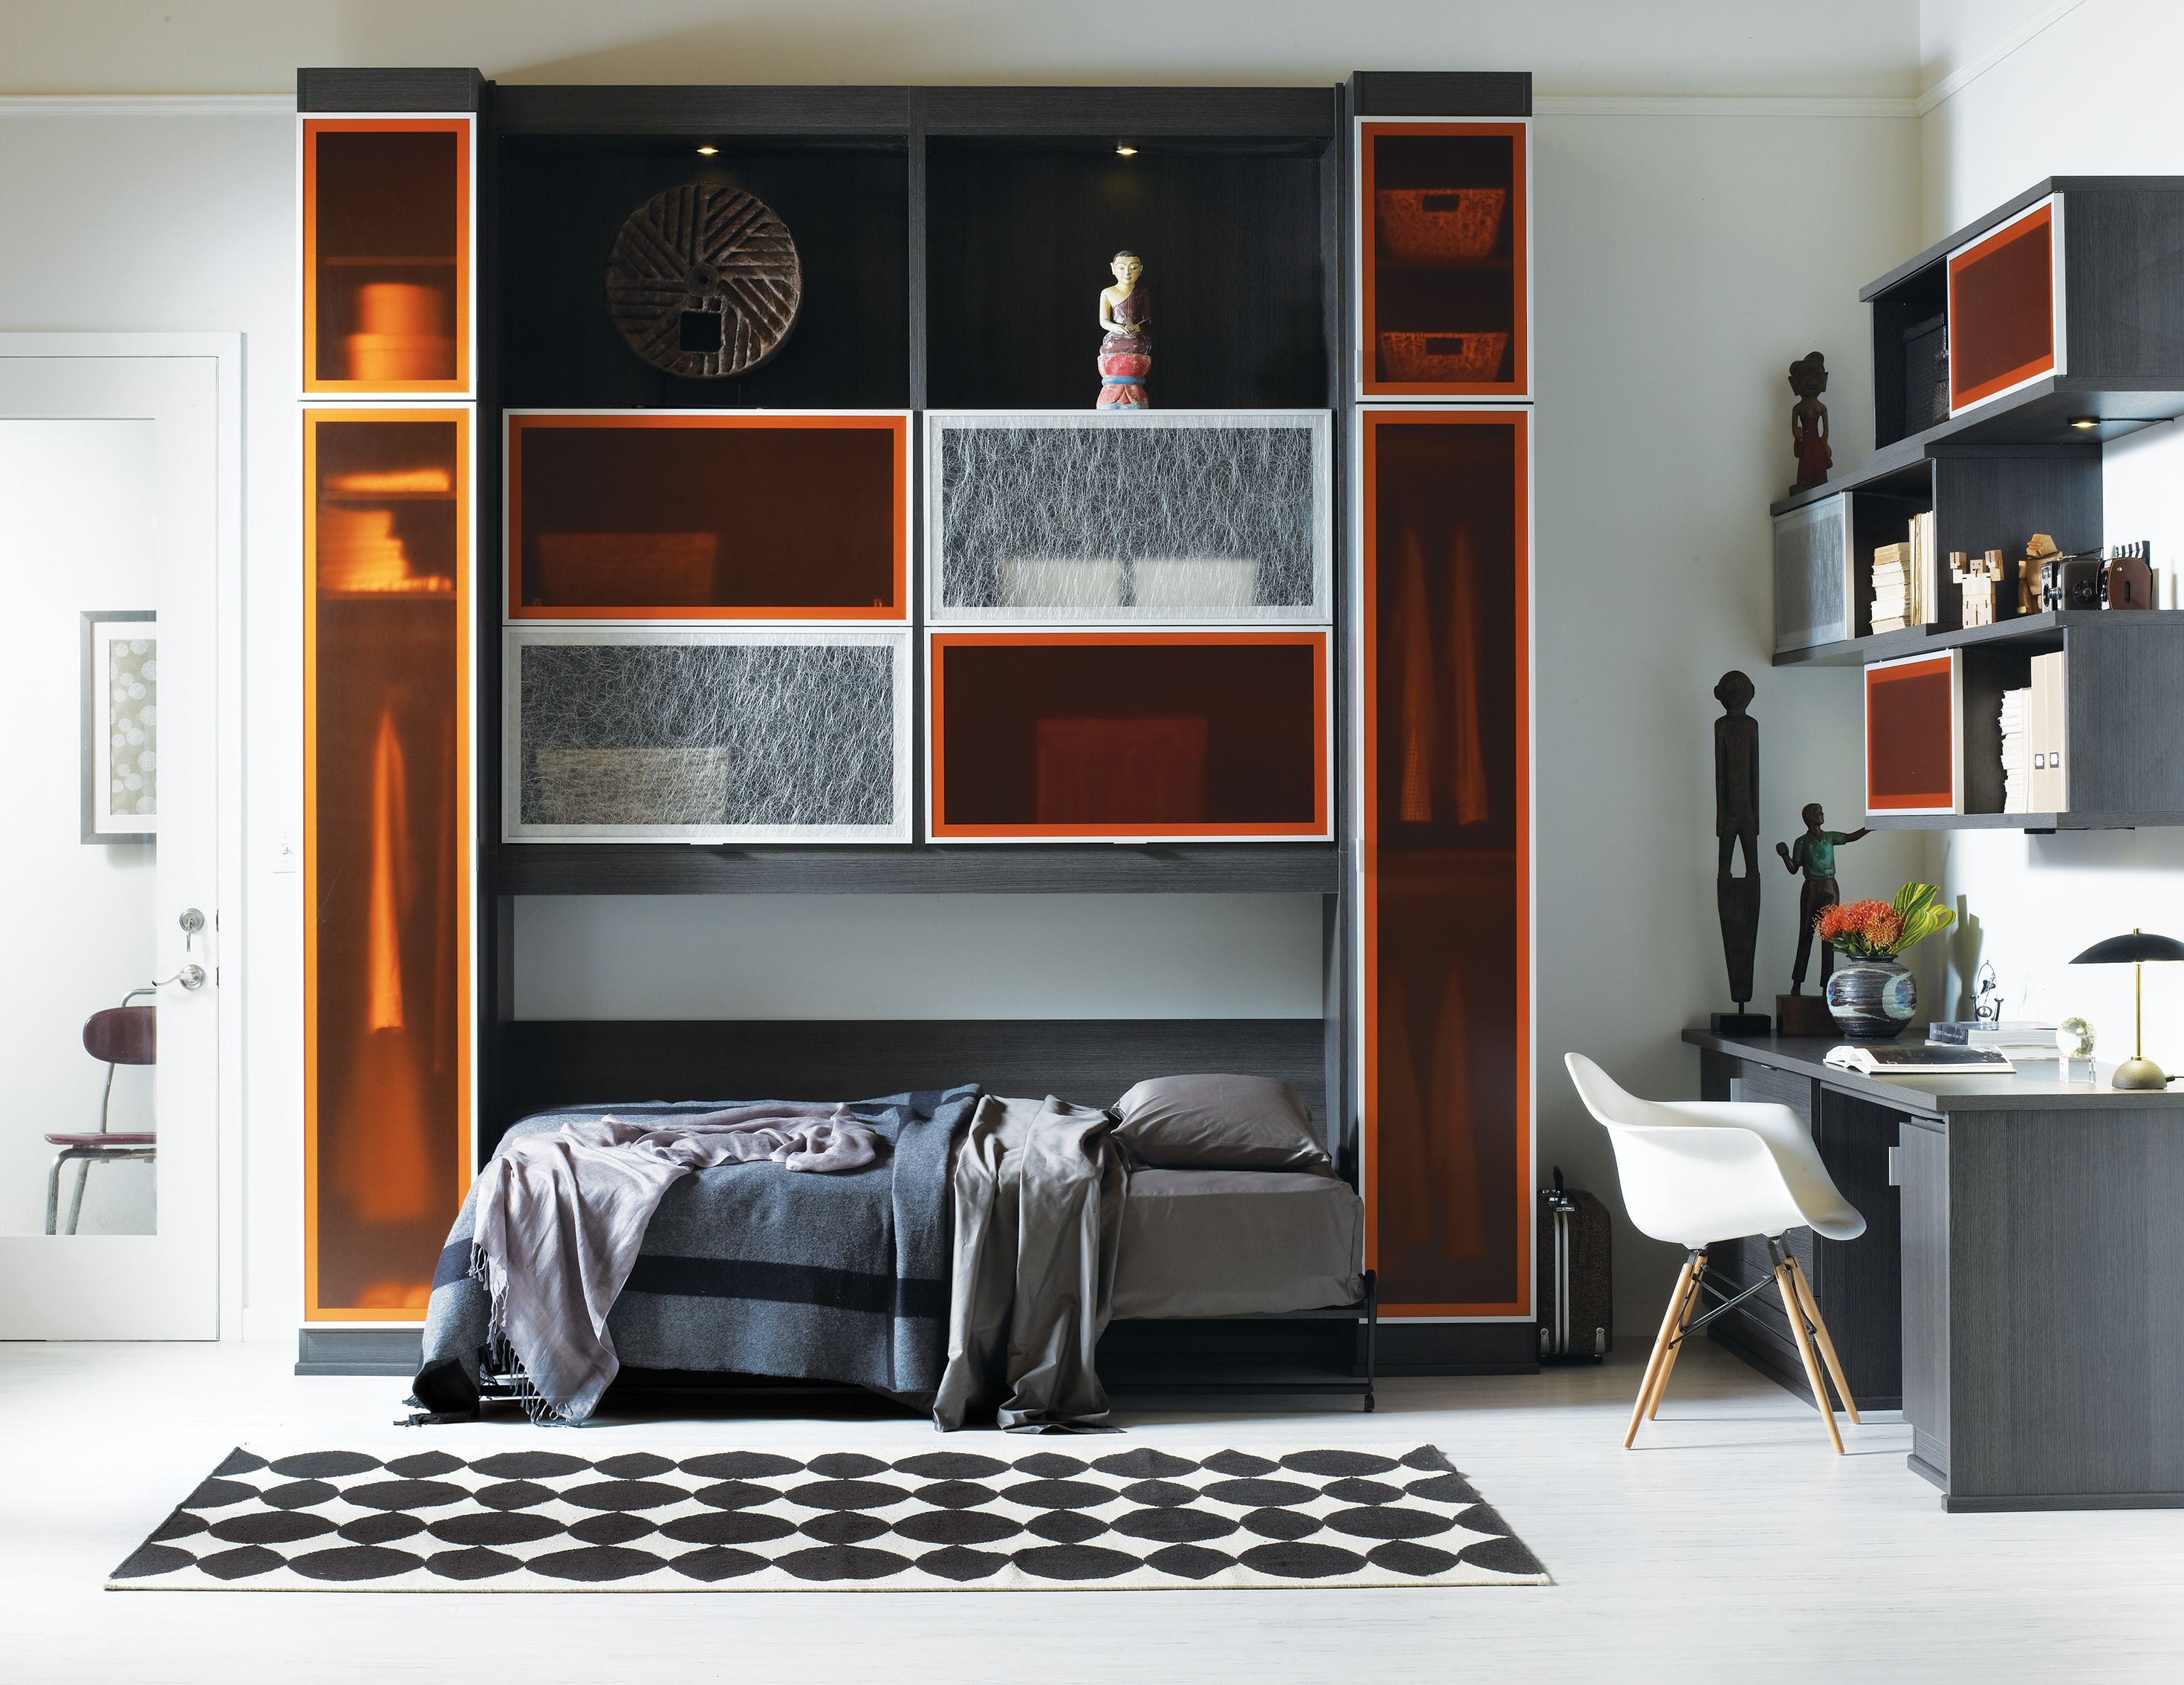 California Closets Murphy Beds With Beautiful Cabinetry, Finishes, And  Shelving, Organize Your Room